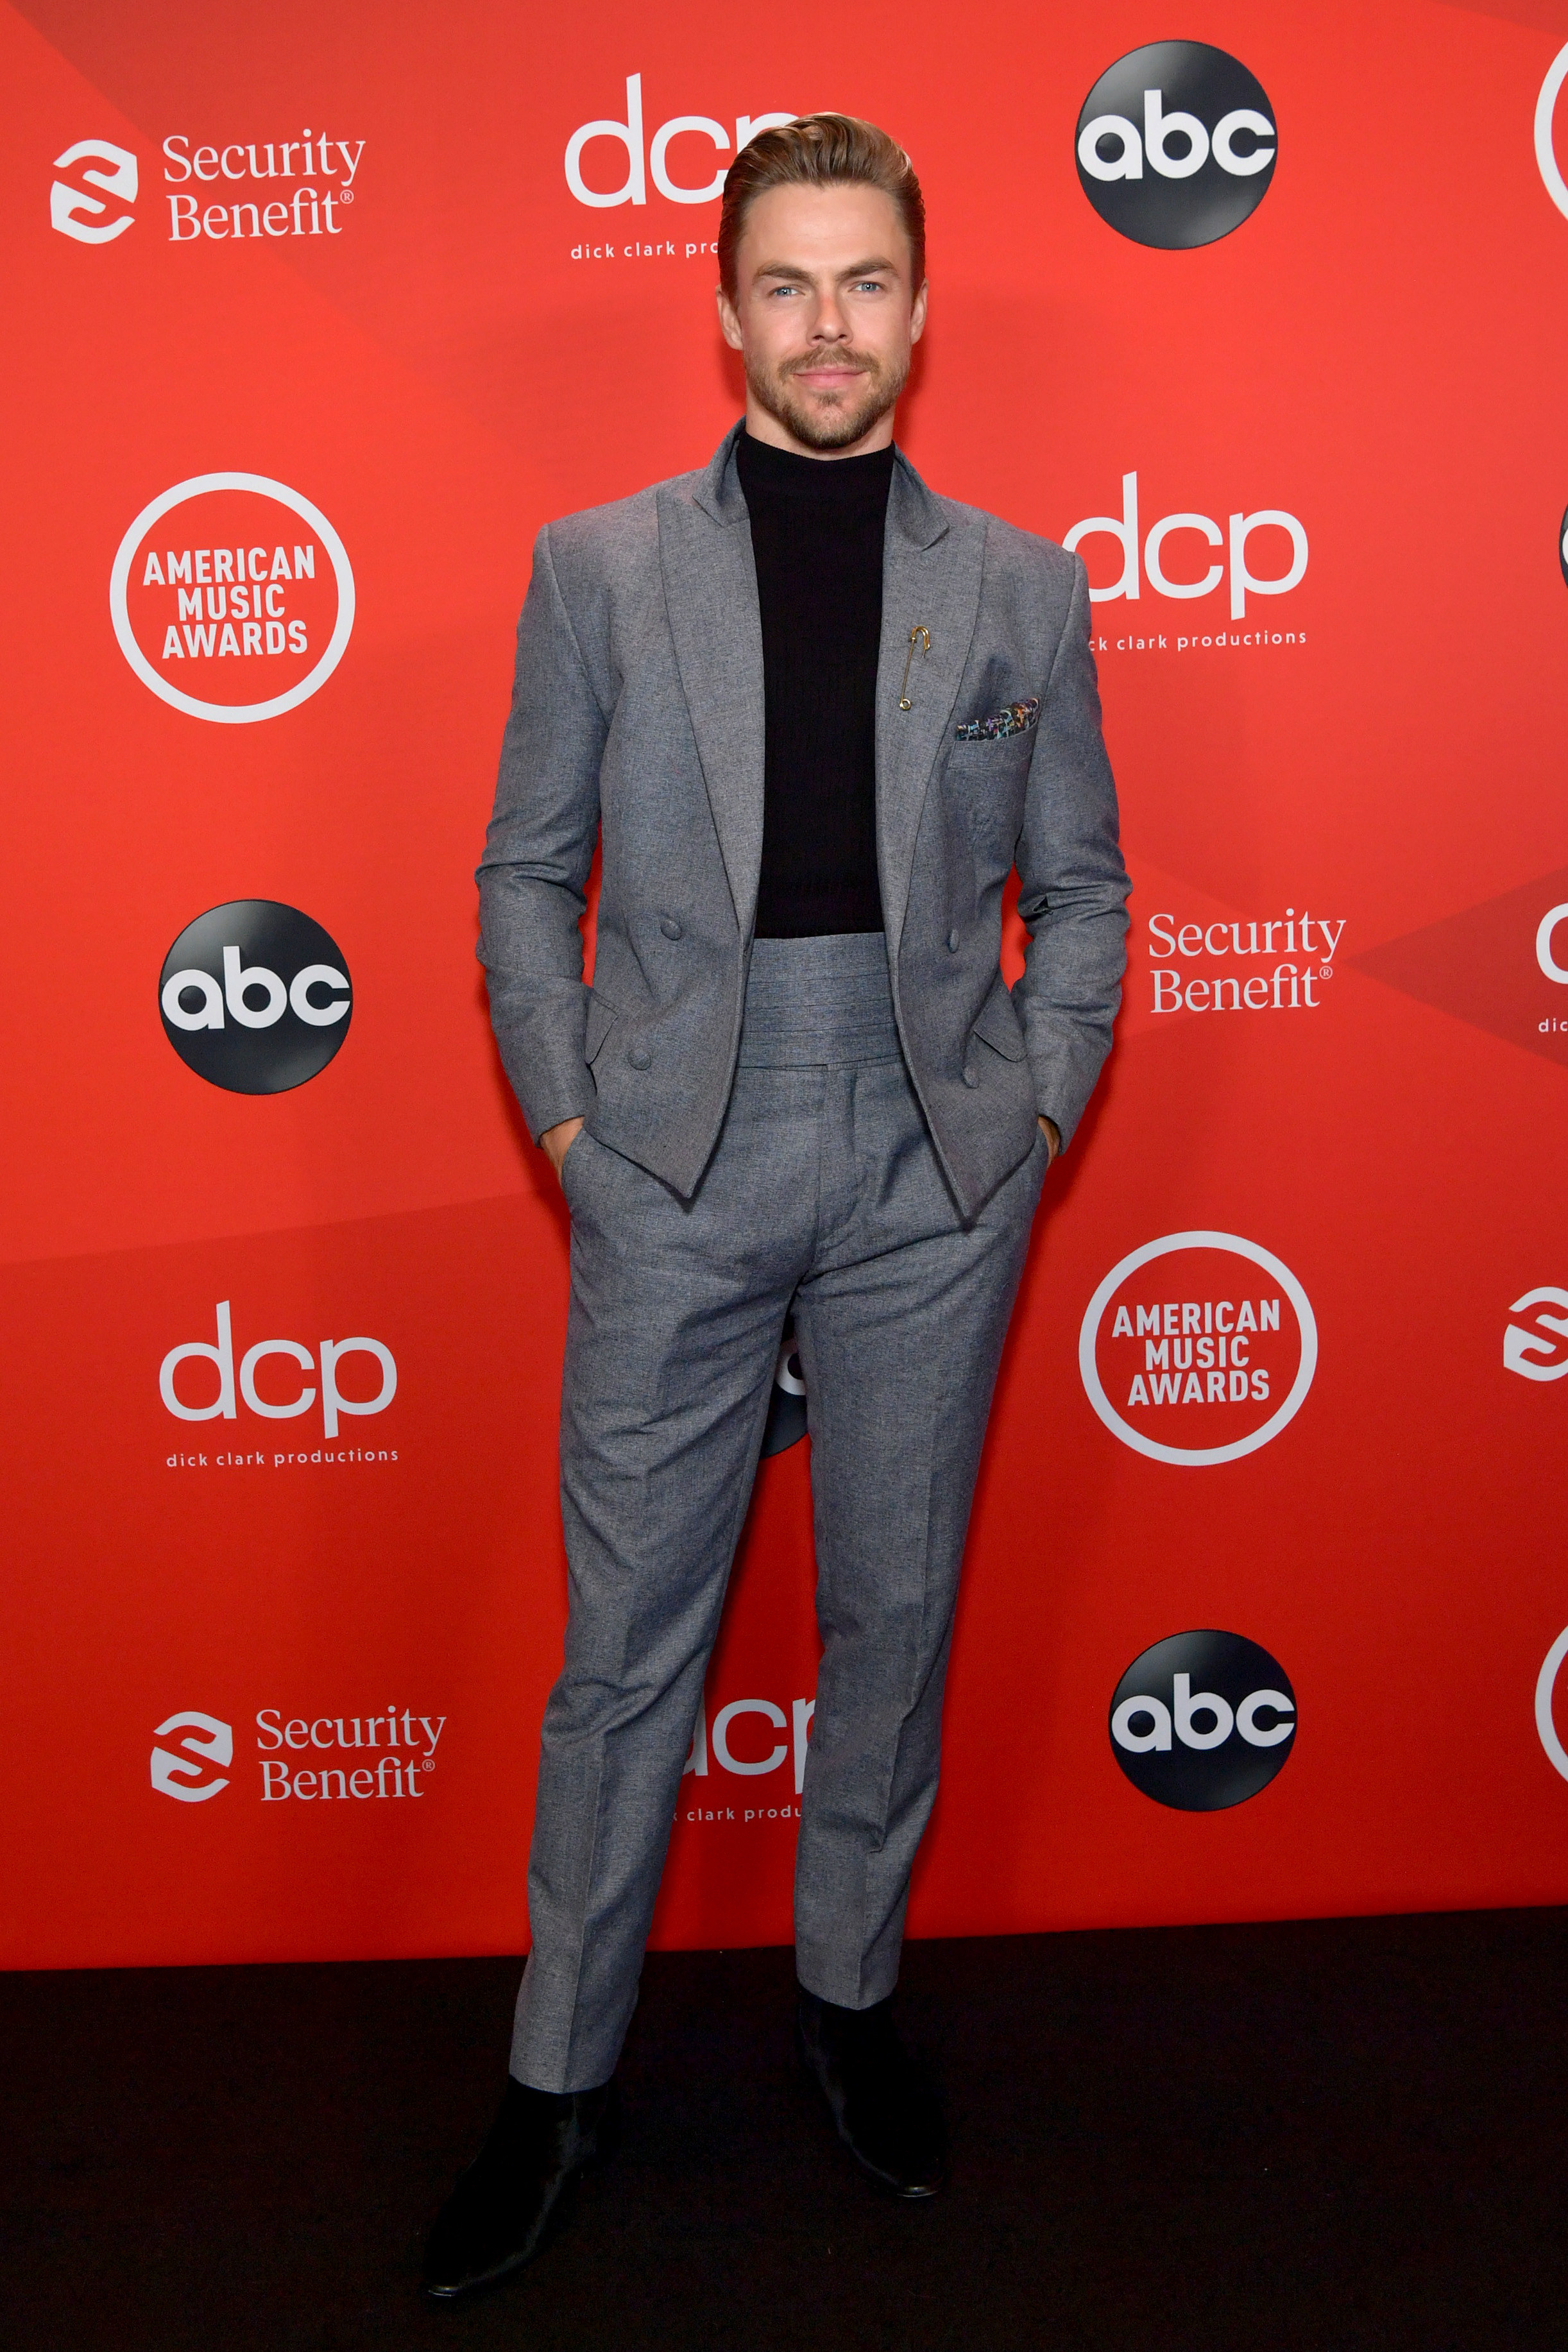 Derek Hough attends the 2020 American Music Awards wearing a jacket and high-waisted pants